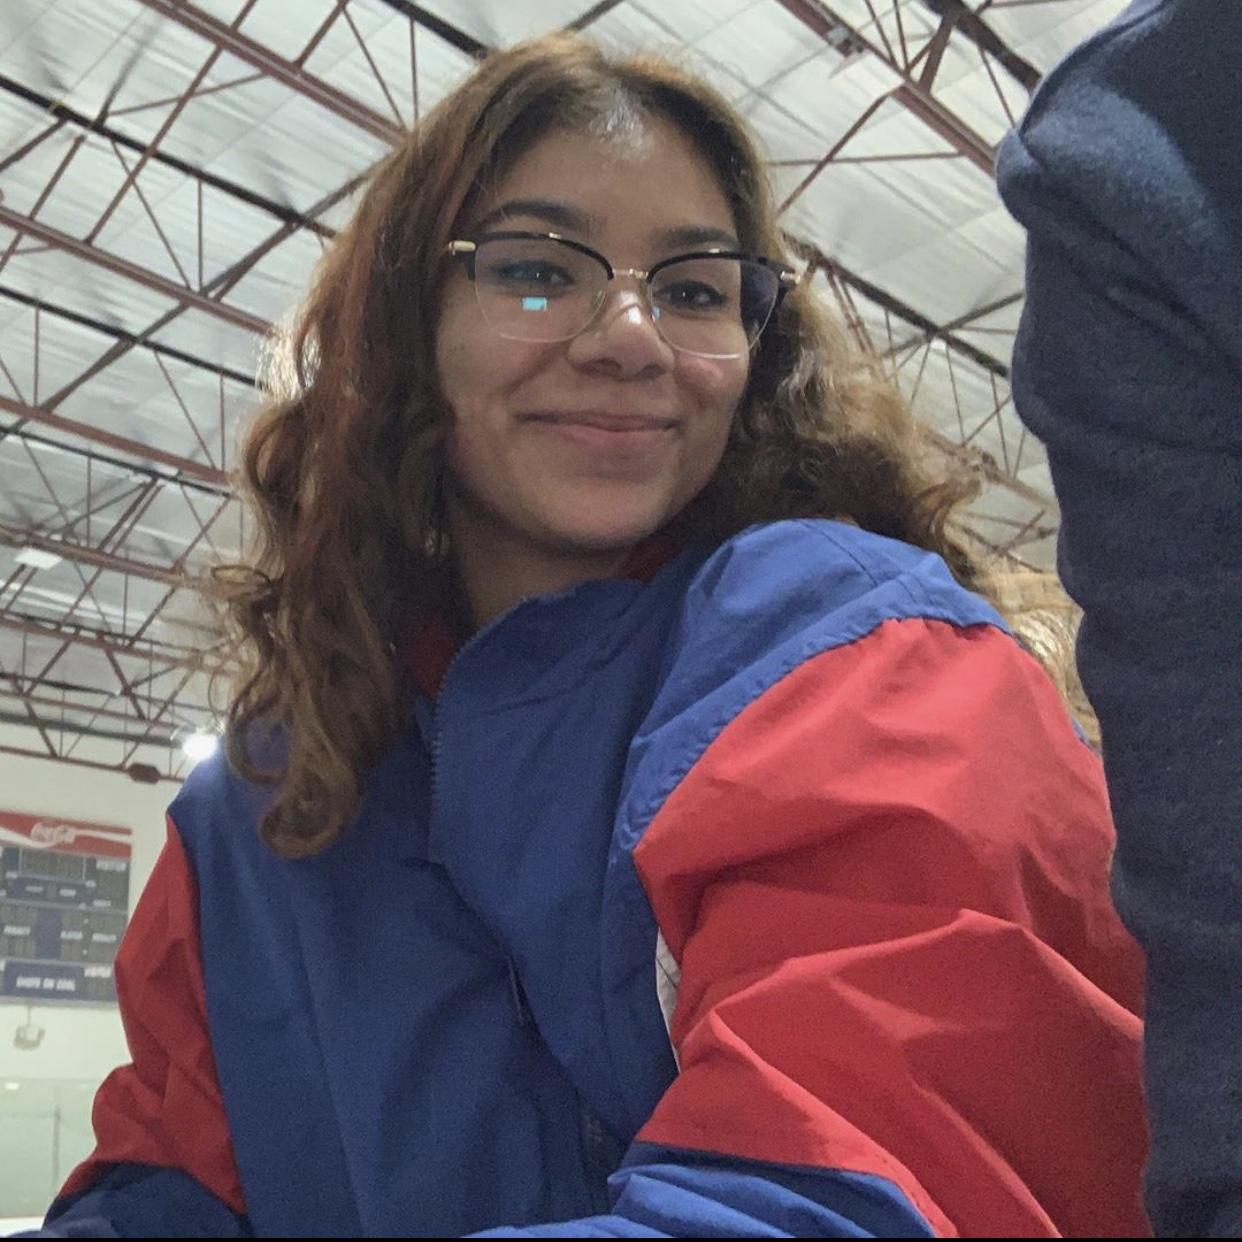 Headshot of Isela Rodriguez, who has glasses and is wearing a blue and red jacket. Courtesy of Isela Rodriguez.